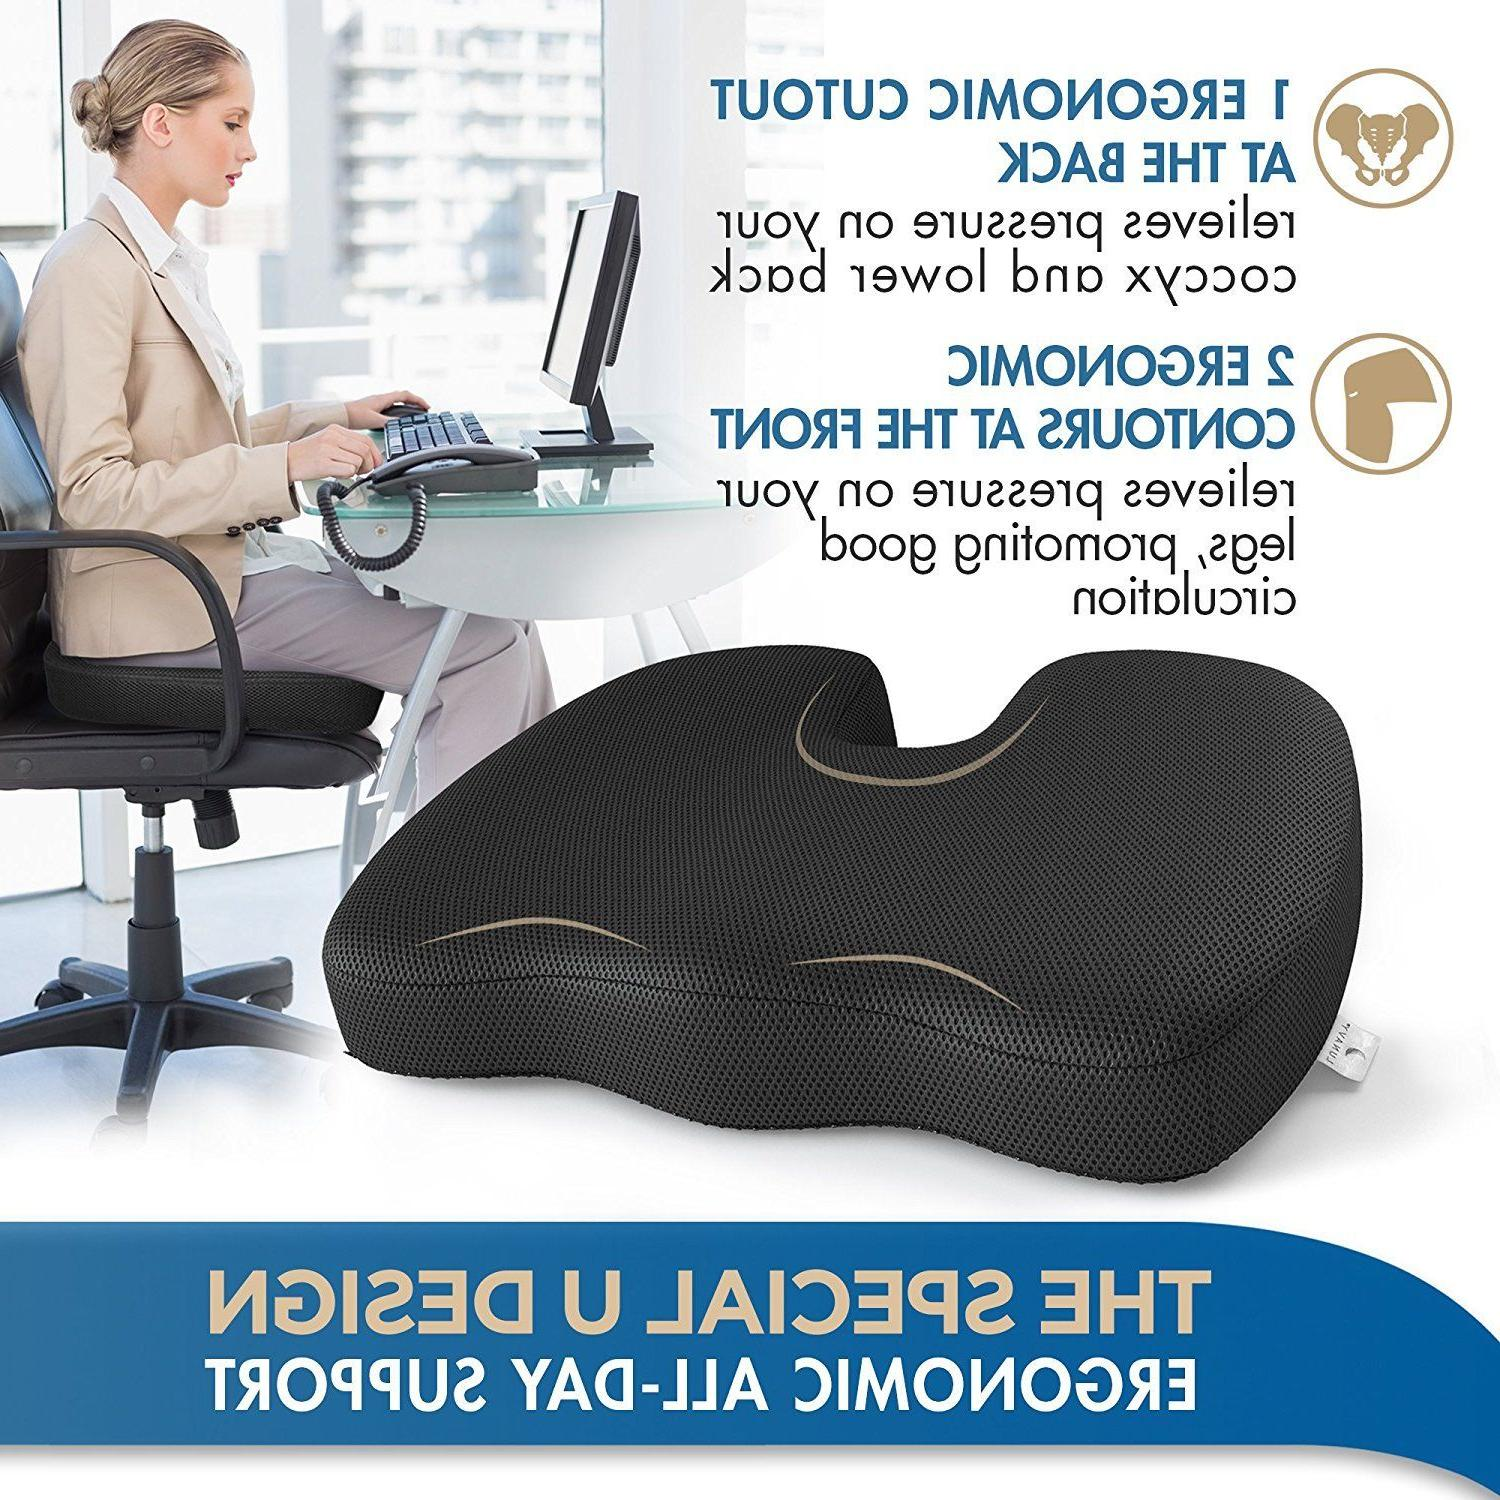 Premium Orthopedic Foam Seat Cushion Padded Pillow